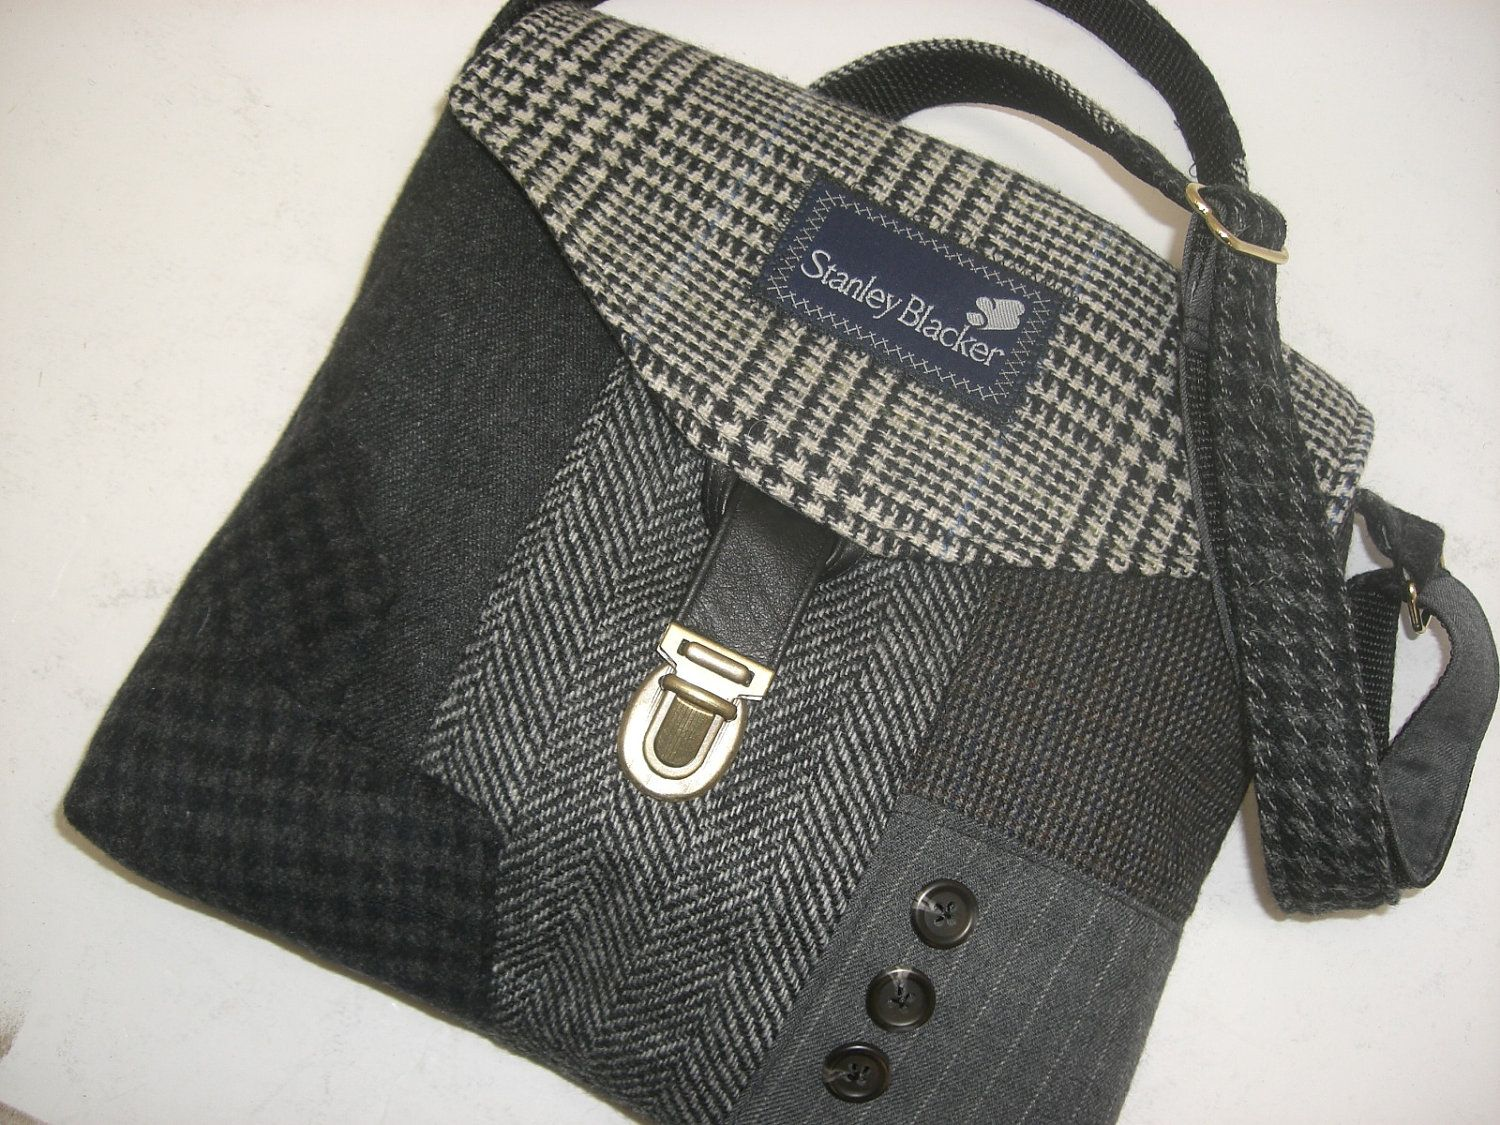 Recycled rice bag purse - Crossbody Purse Recycled Purse Black Grey Men S Suit Coat Purse Crossbody Strap Purse Recycled Suit Coat Ready To Ship